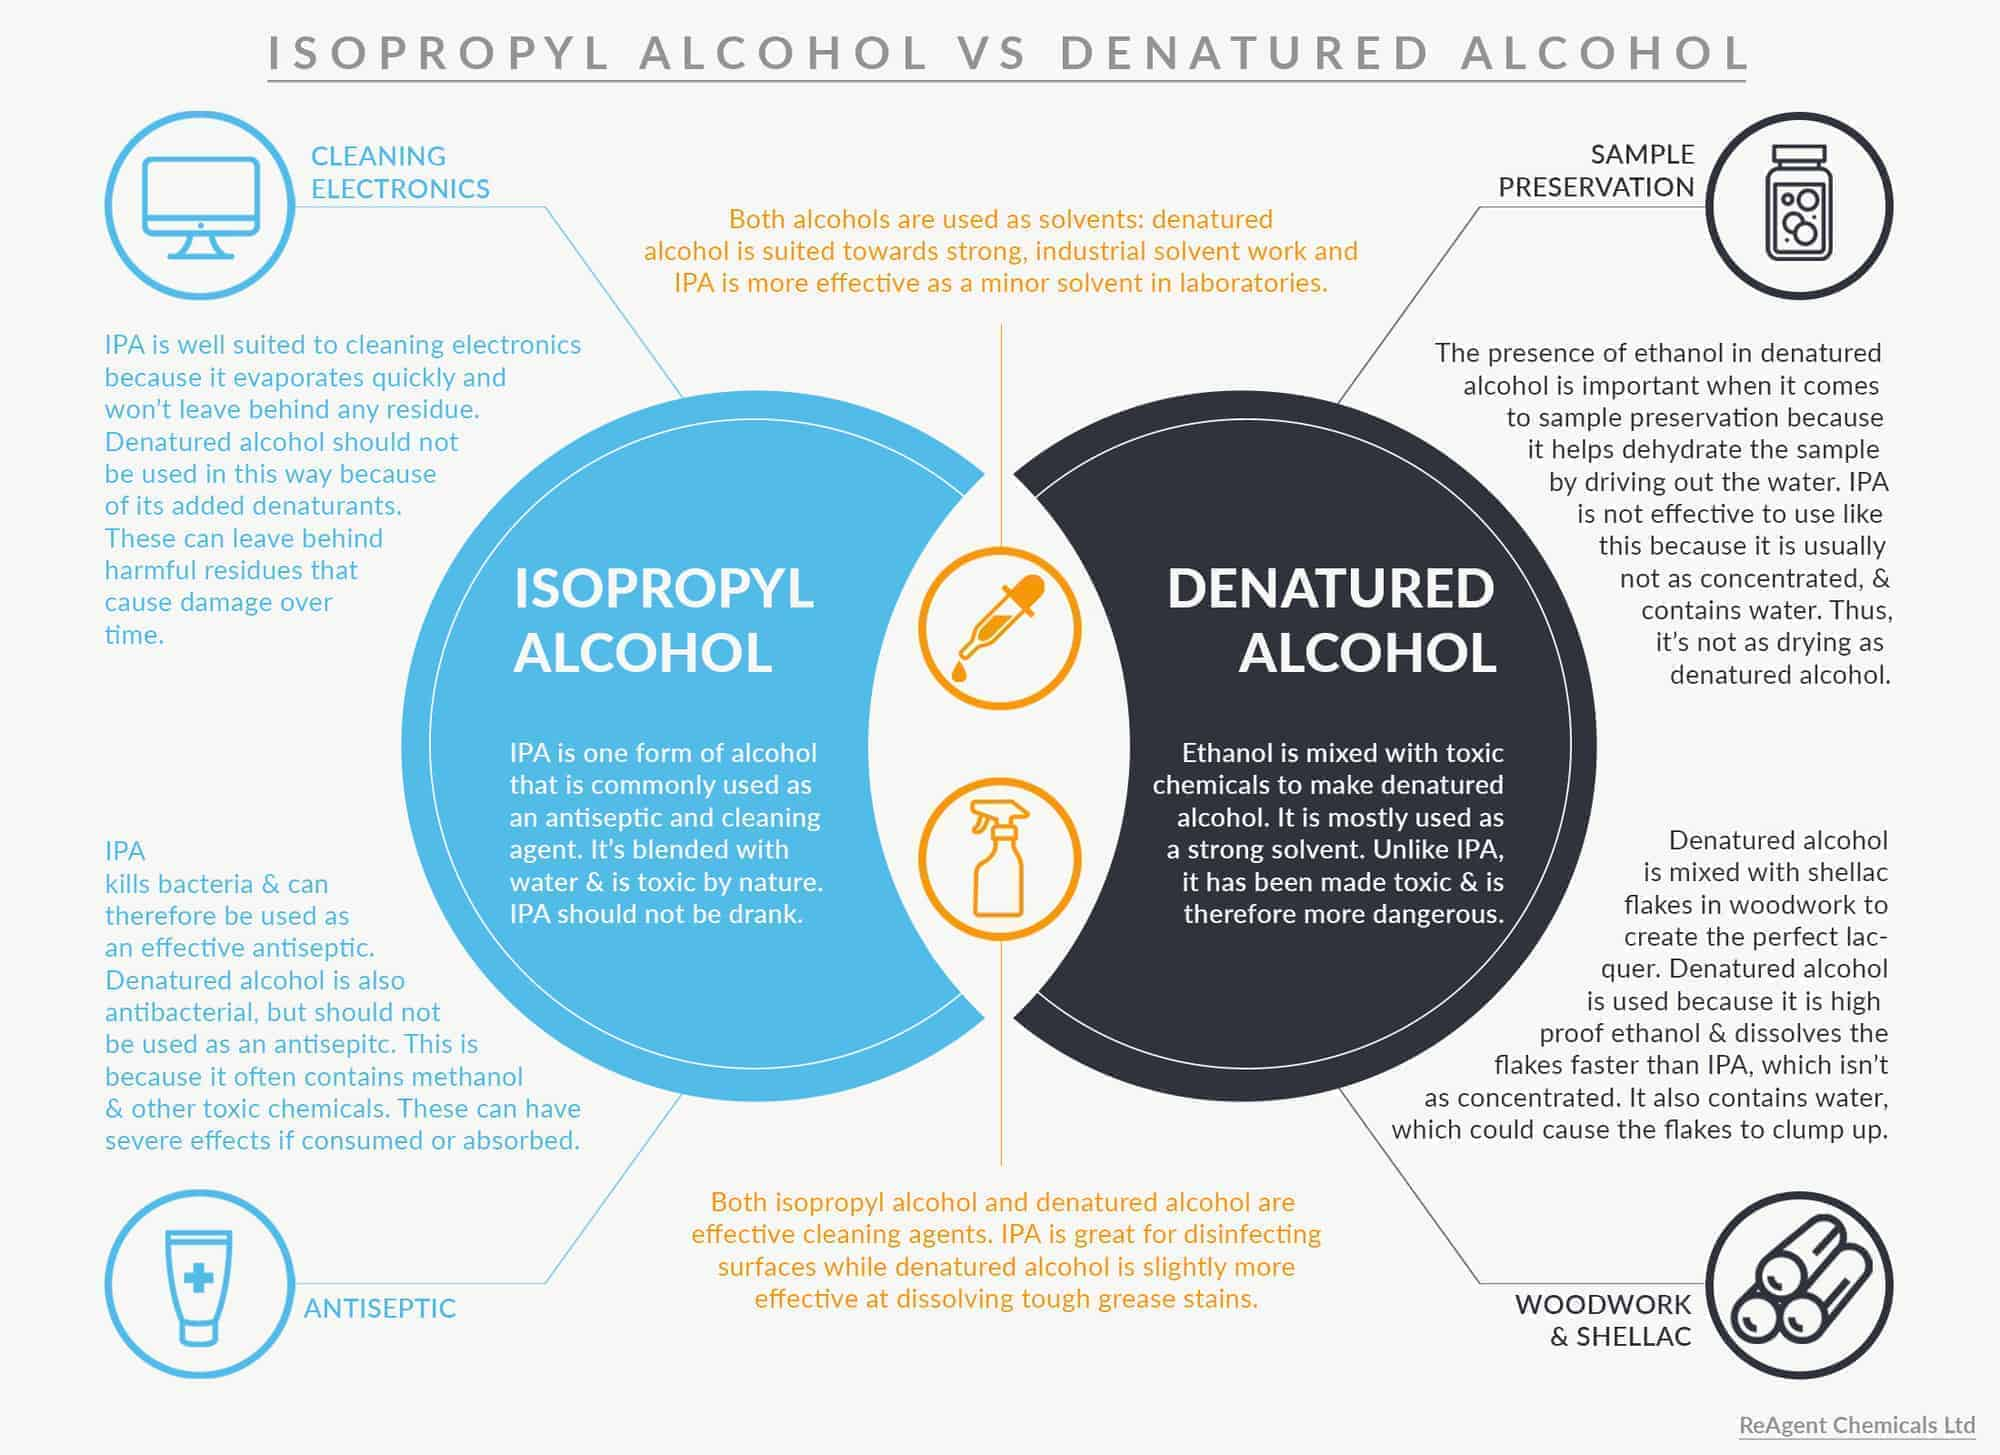 IPA vs DA 2 - Can I Use Isopropyl Alcohol Instead of Denatured Alcohol?